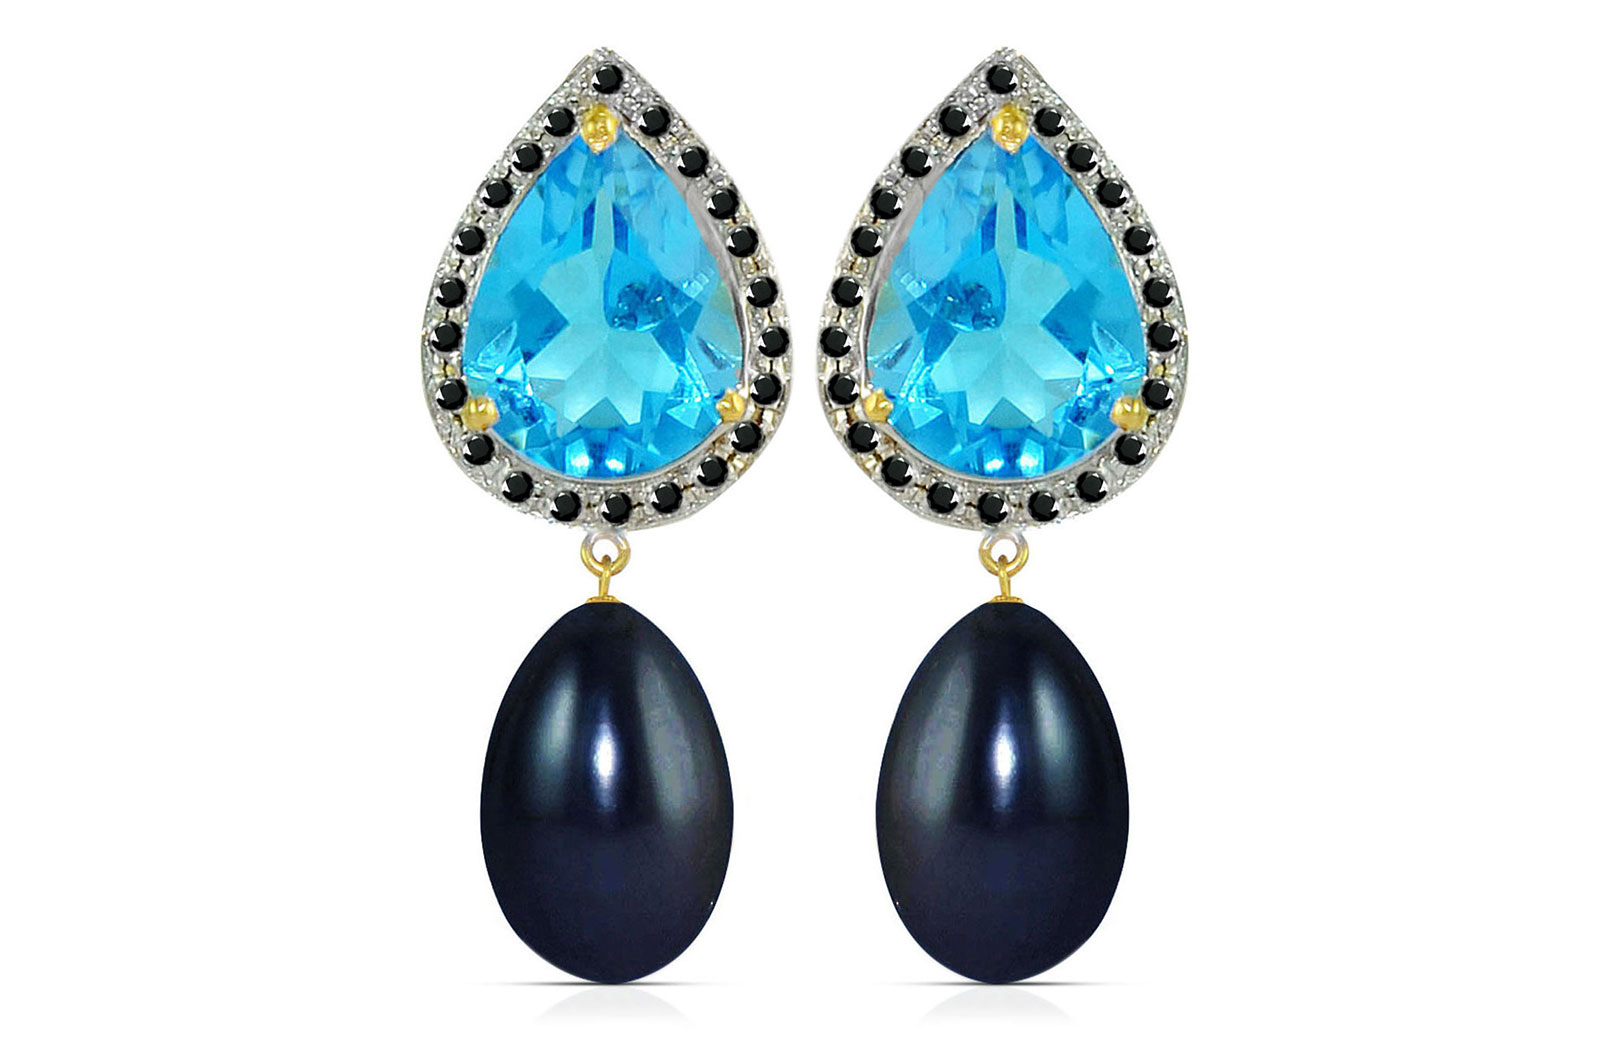 Vera Perla 18K Gold 0.24ct Black Diamonds, Topaz and 13mm Black Pearl Earrings